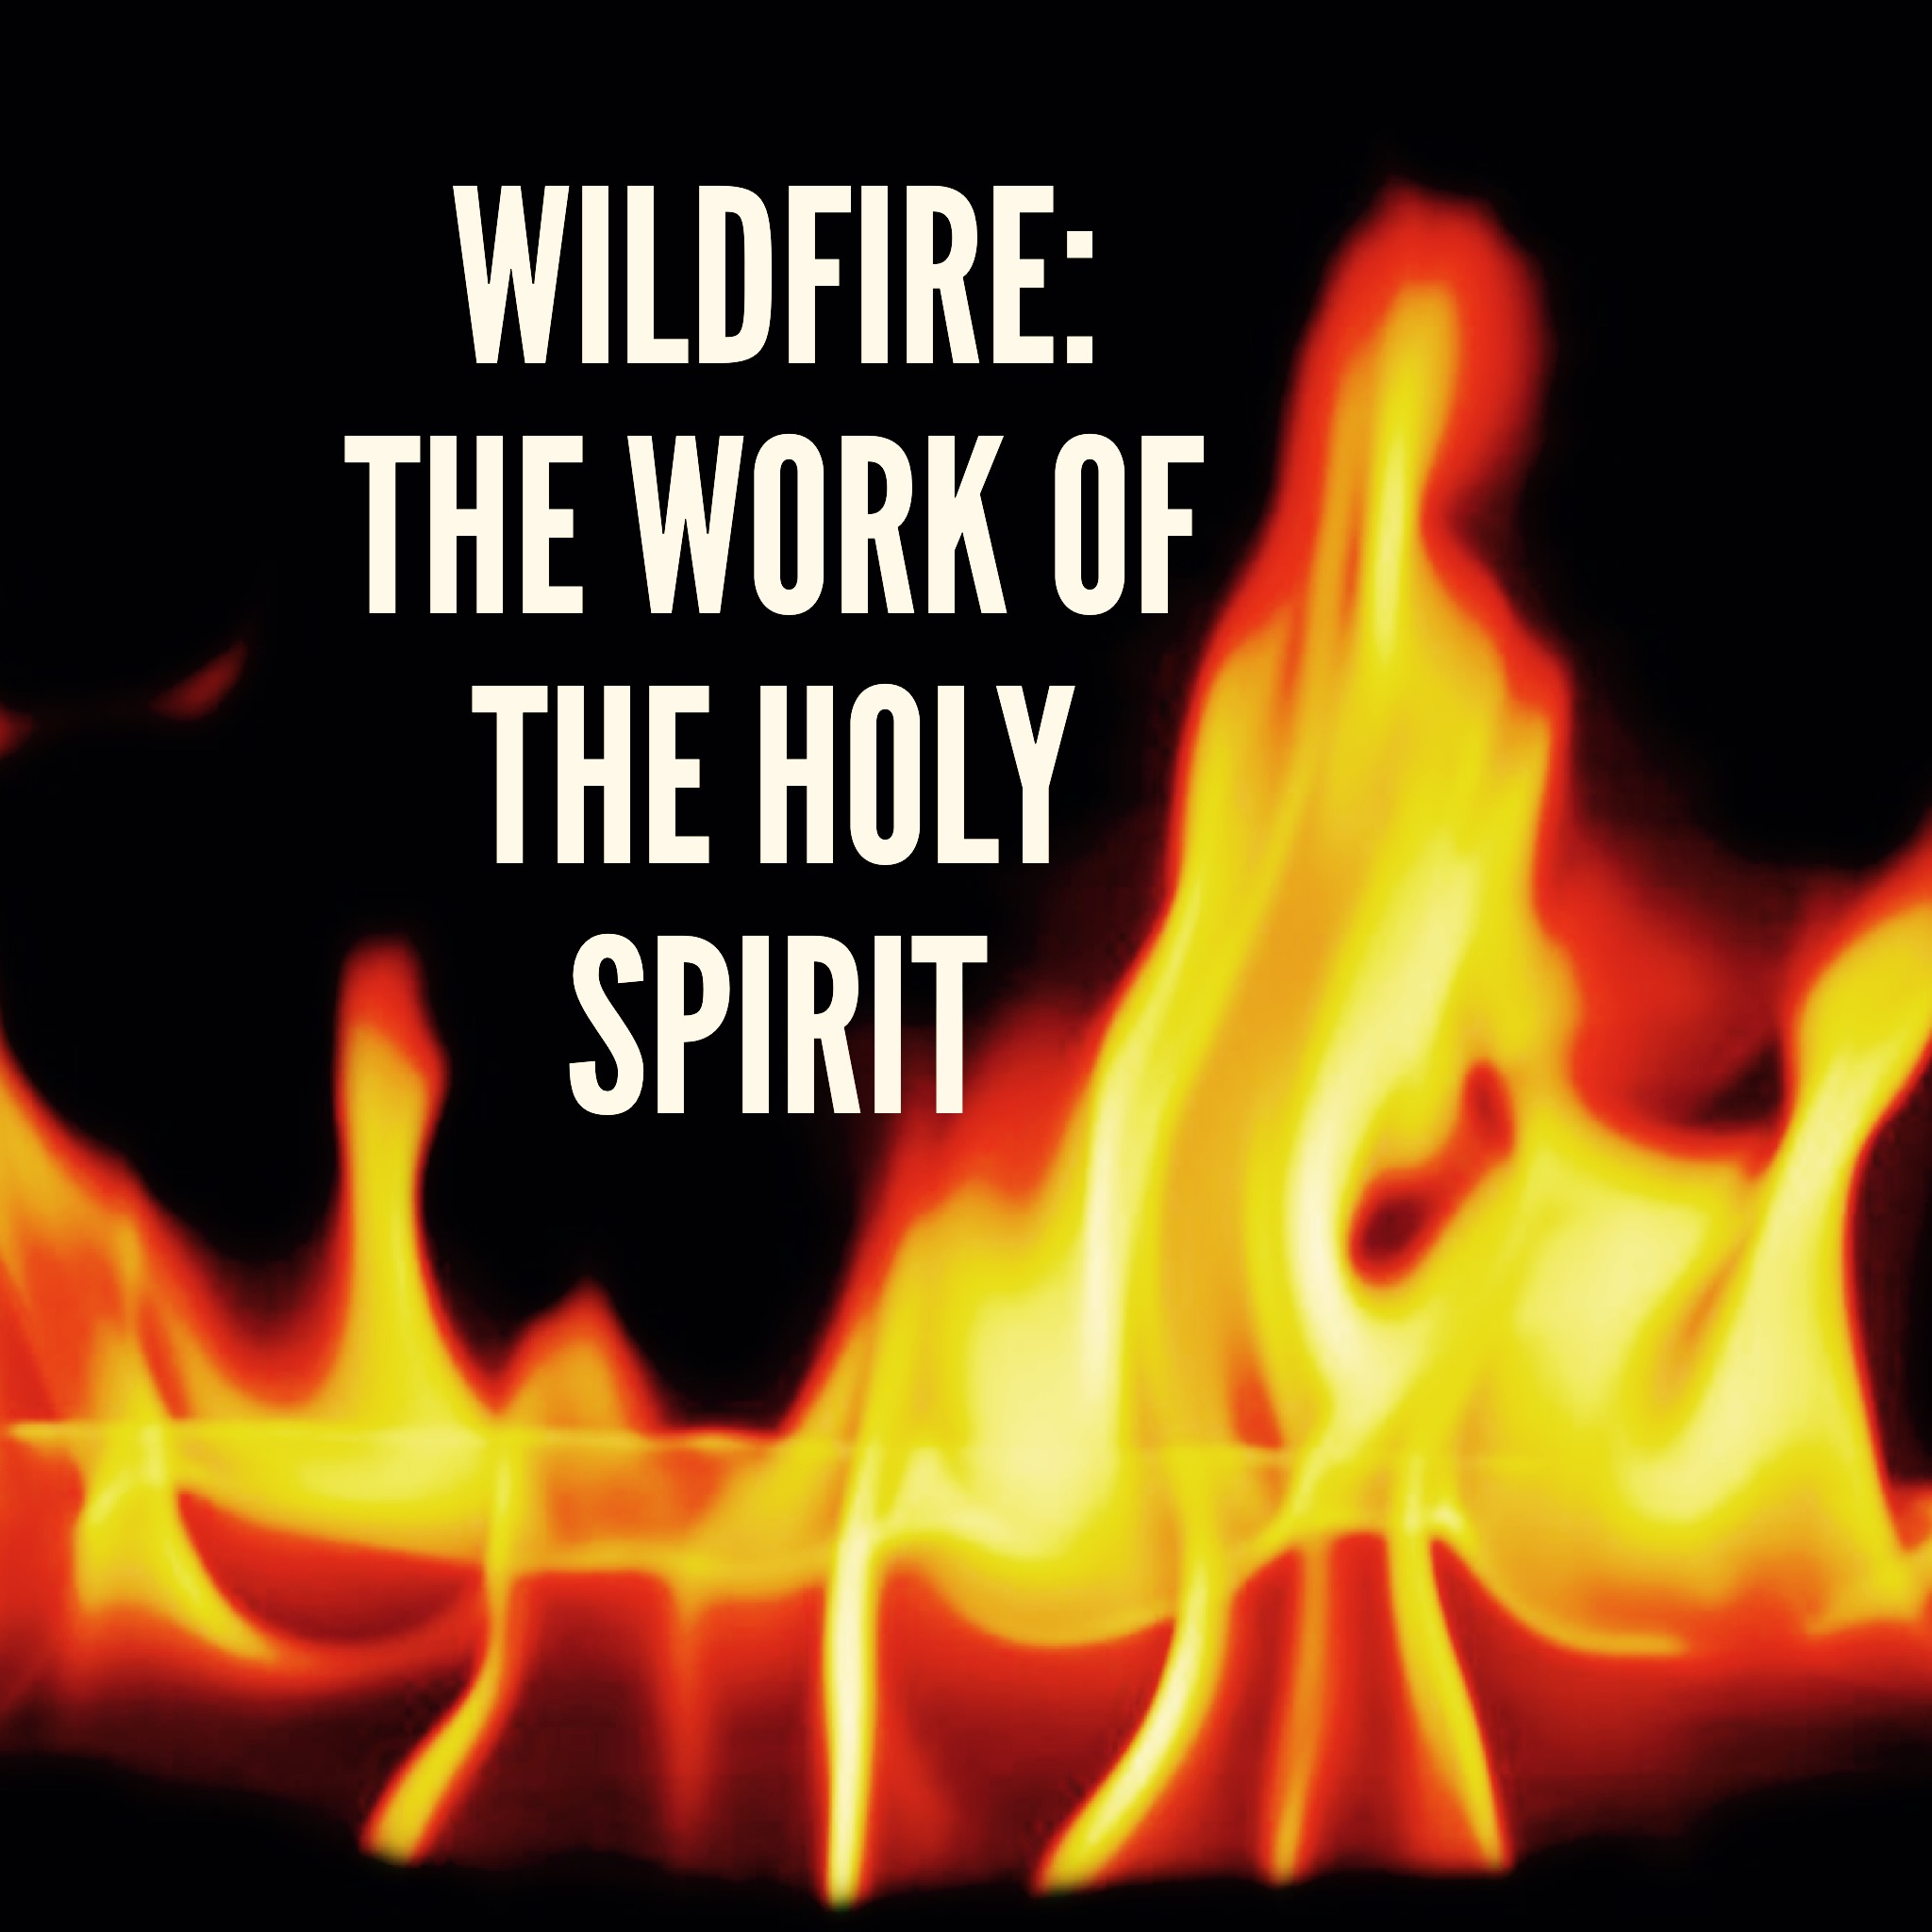 Wildfire the work of the holy spirit unashamed study notes chapter 30 the work of the holy spirit thecheapjerseys Gallery